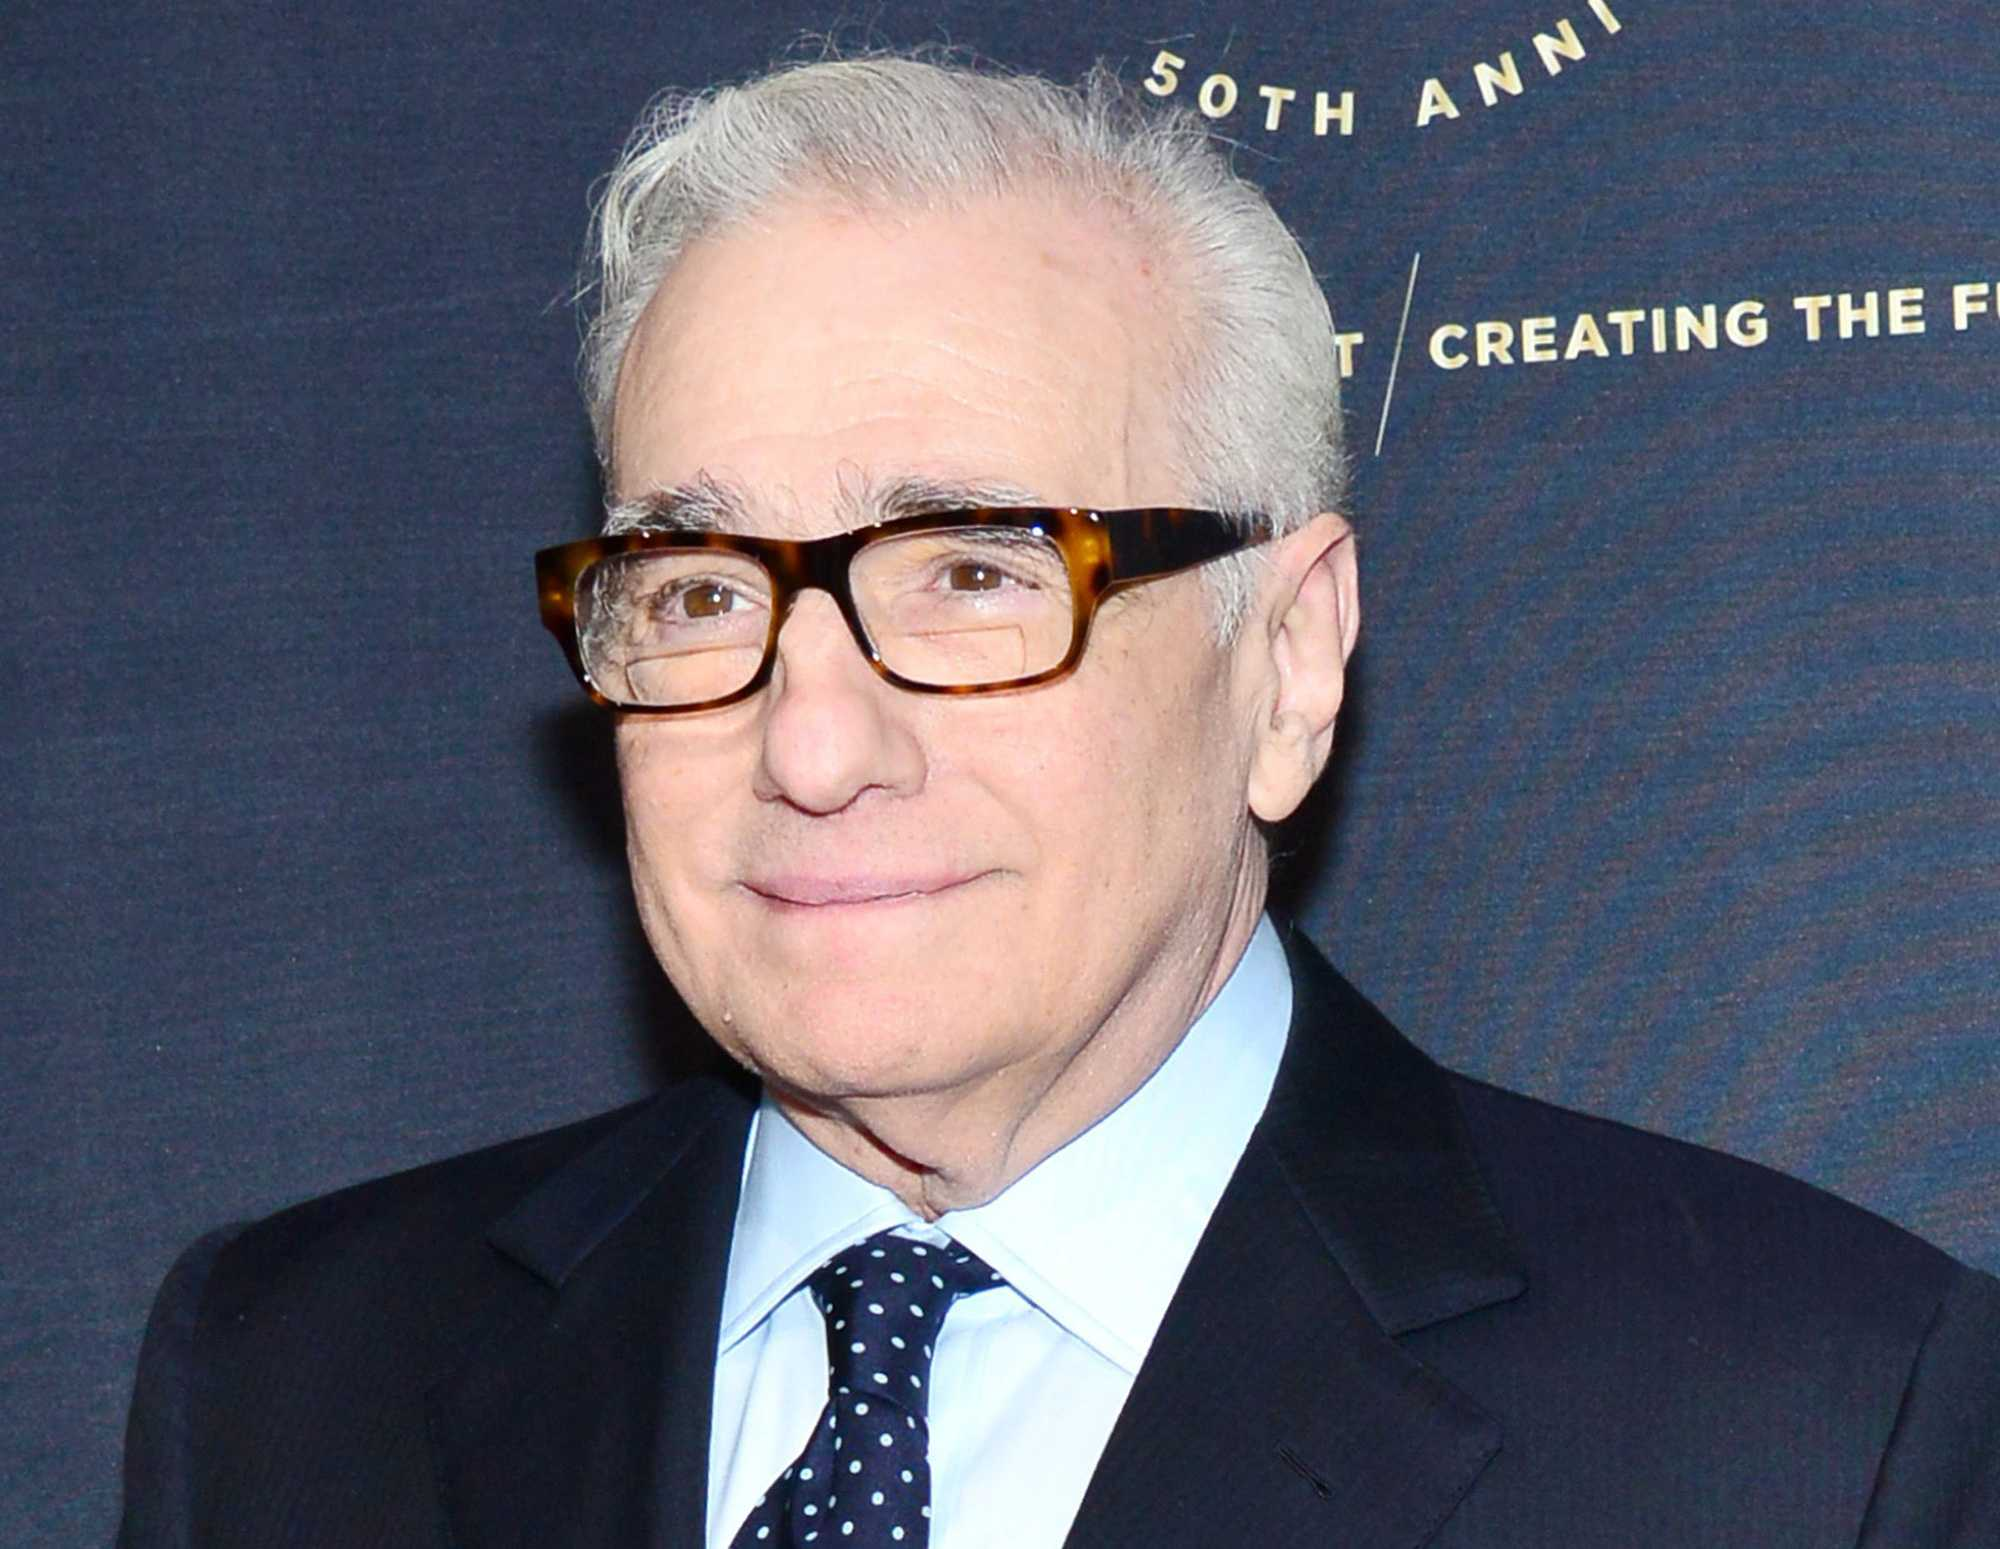 Legendary filmmaker Martin Scorsese's new film